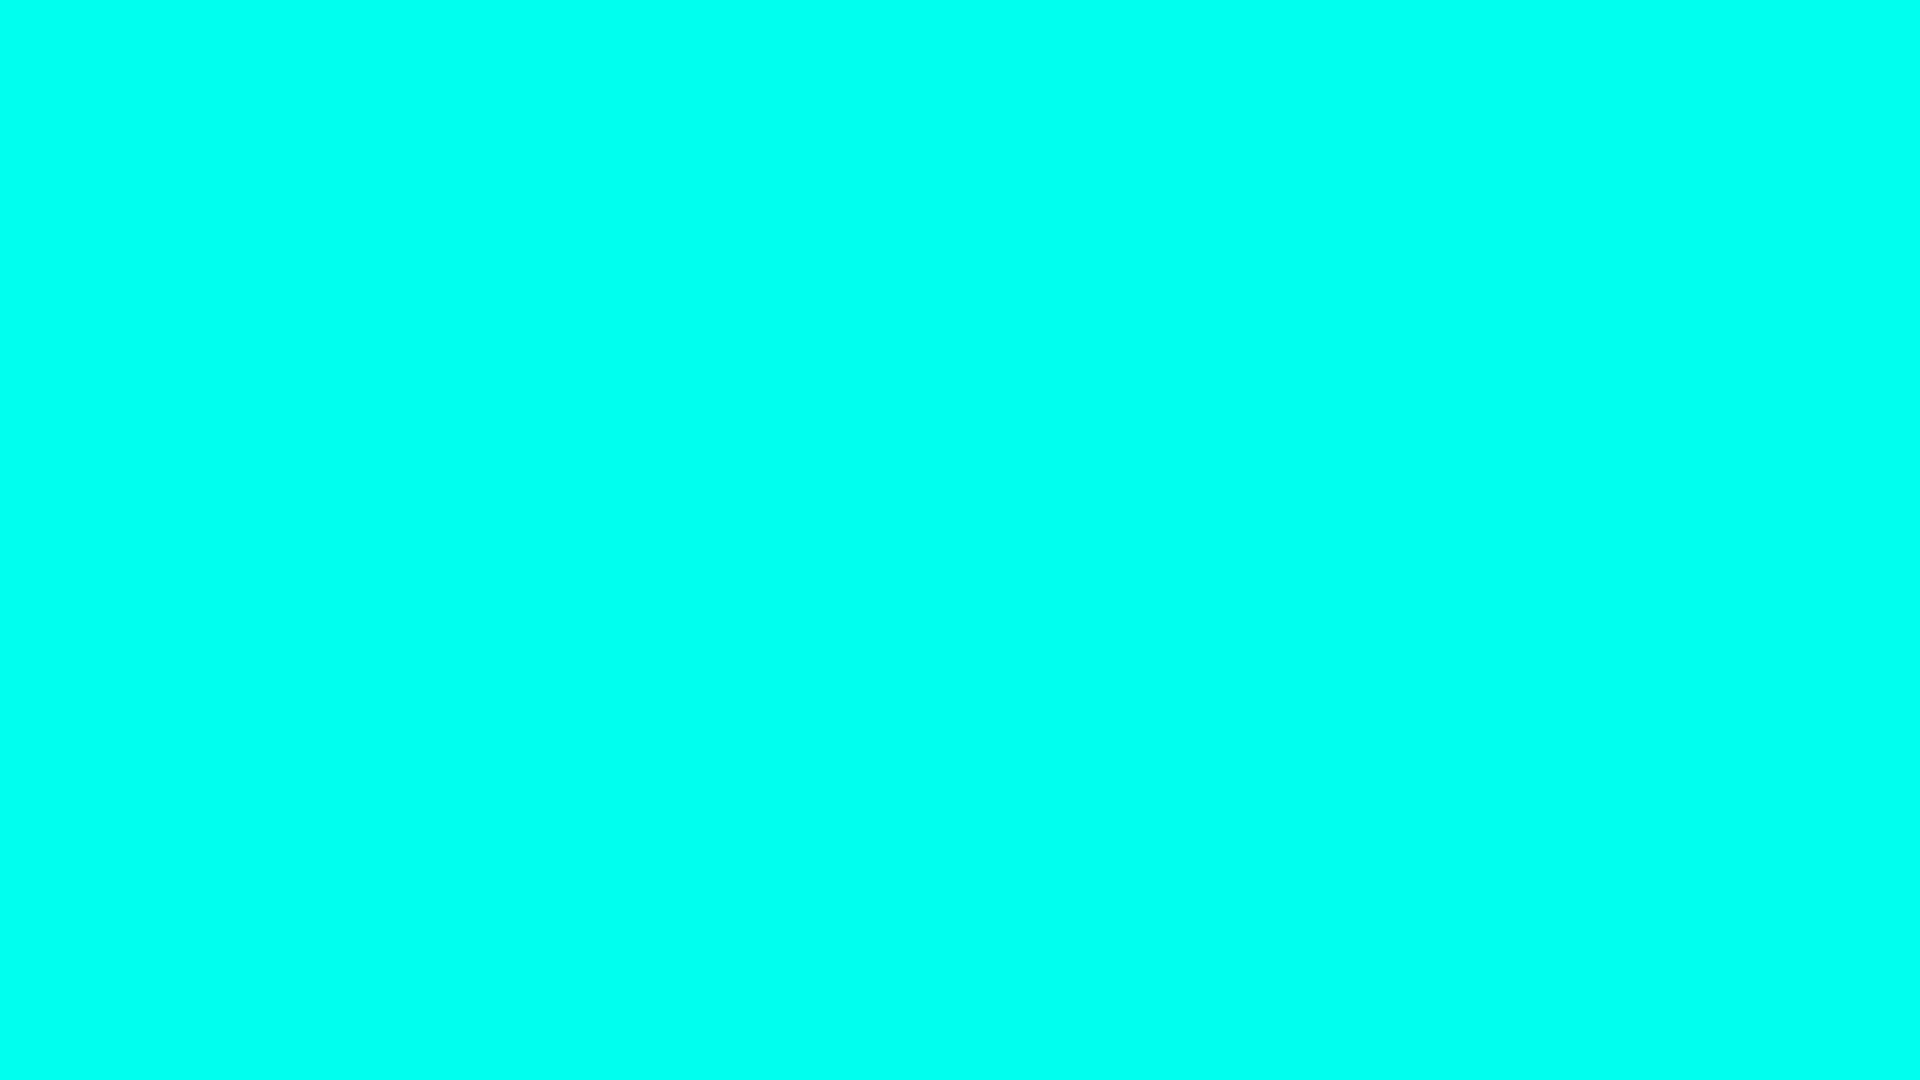 1920x1080 Turquoise Blue Solid Color Background